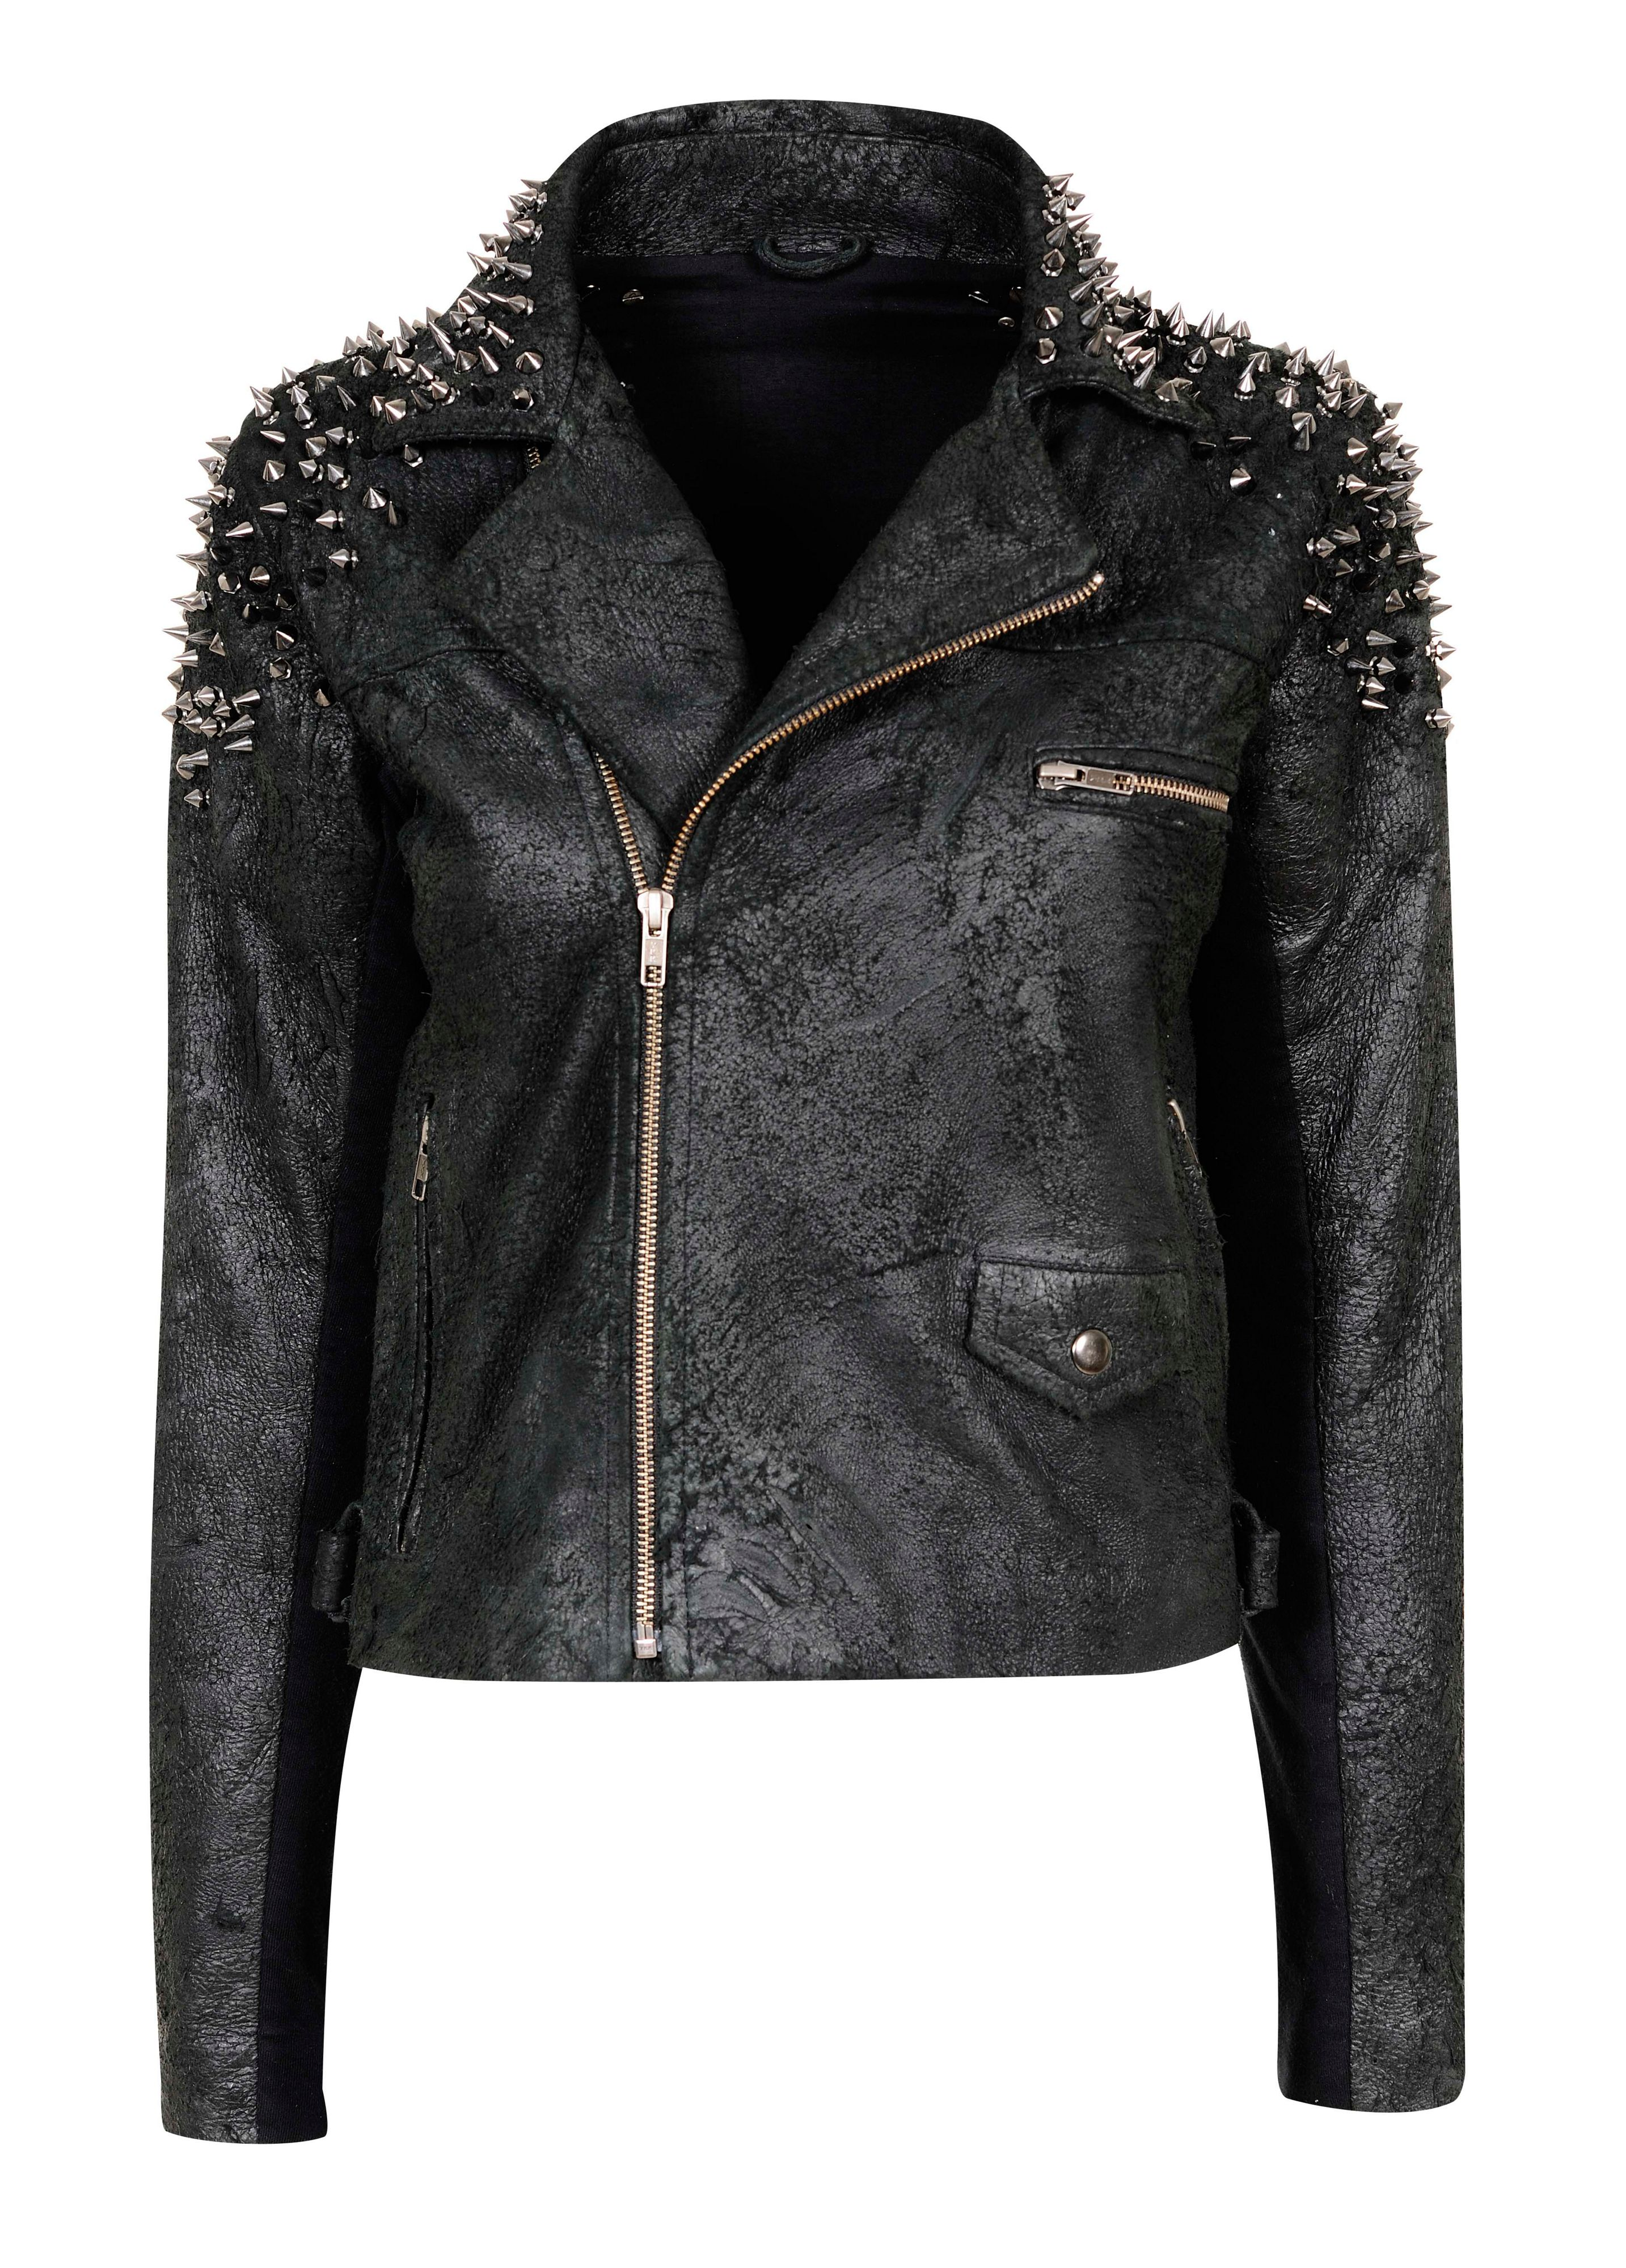 Lynch leather jacket